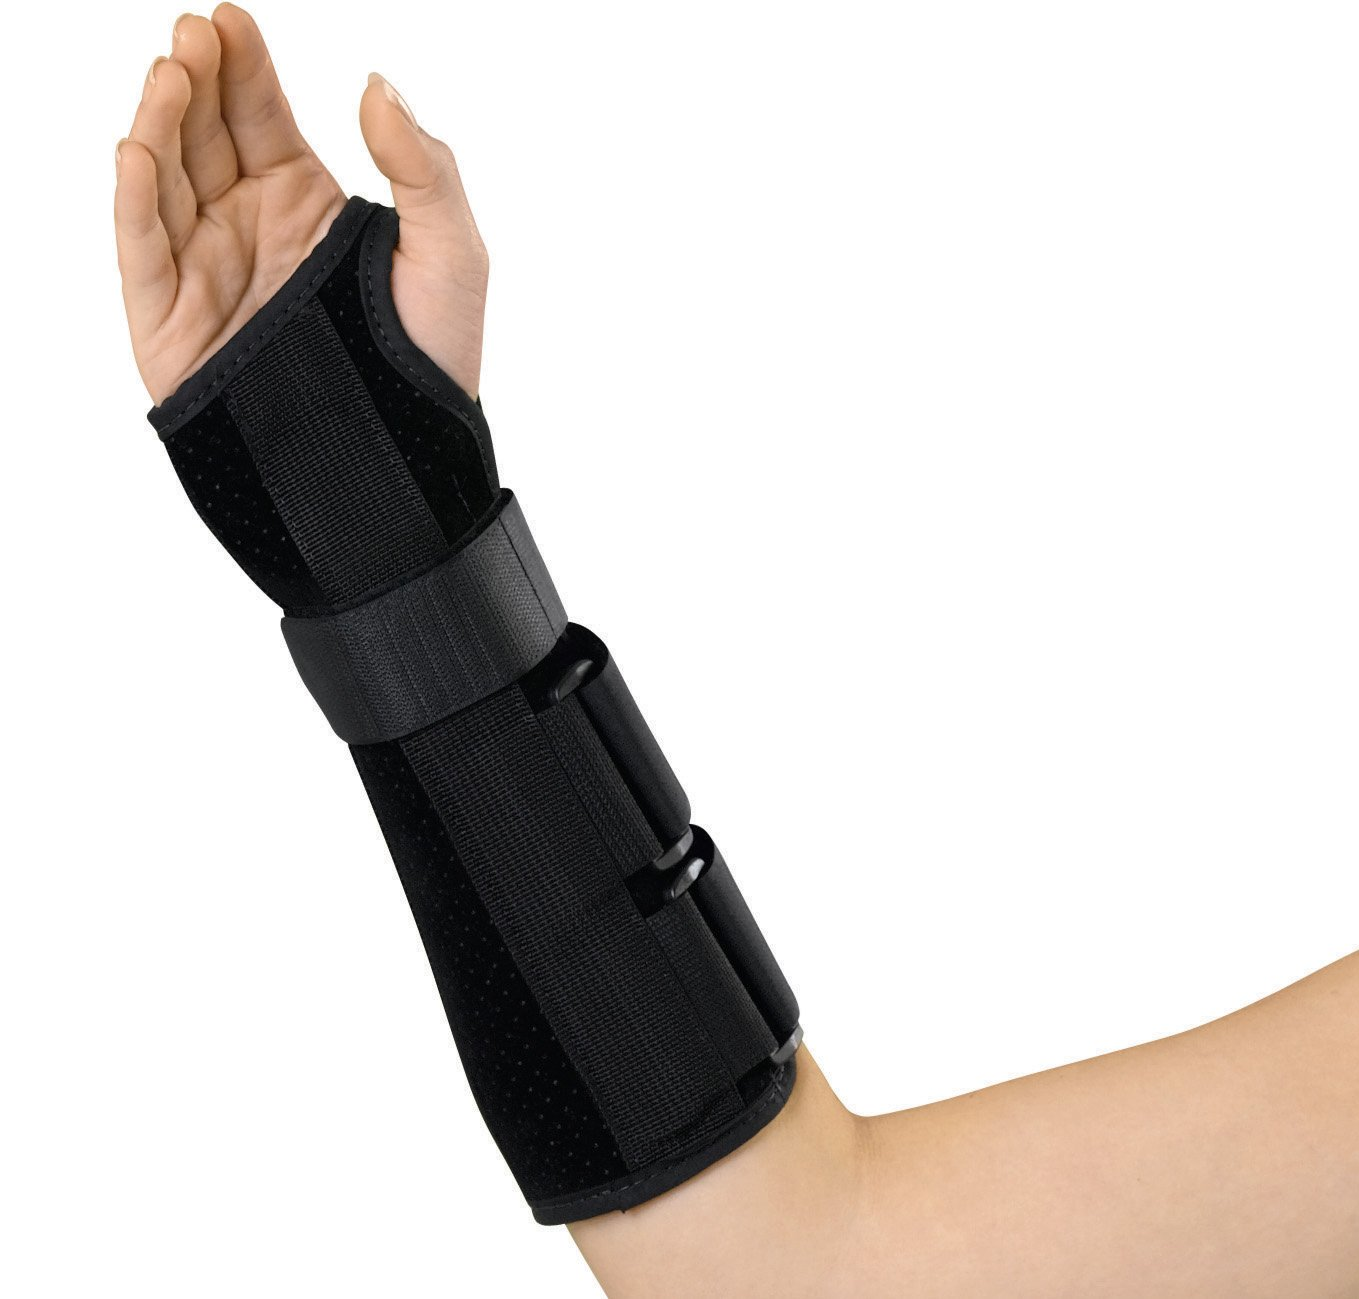 Medline Wrist and Forearm Splints, Right, Medium by Medline